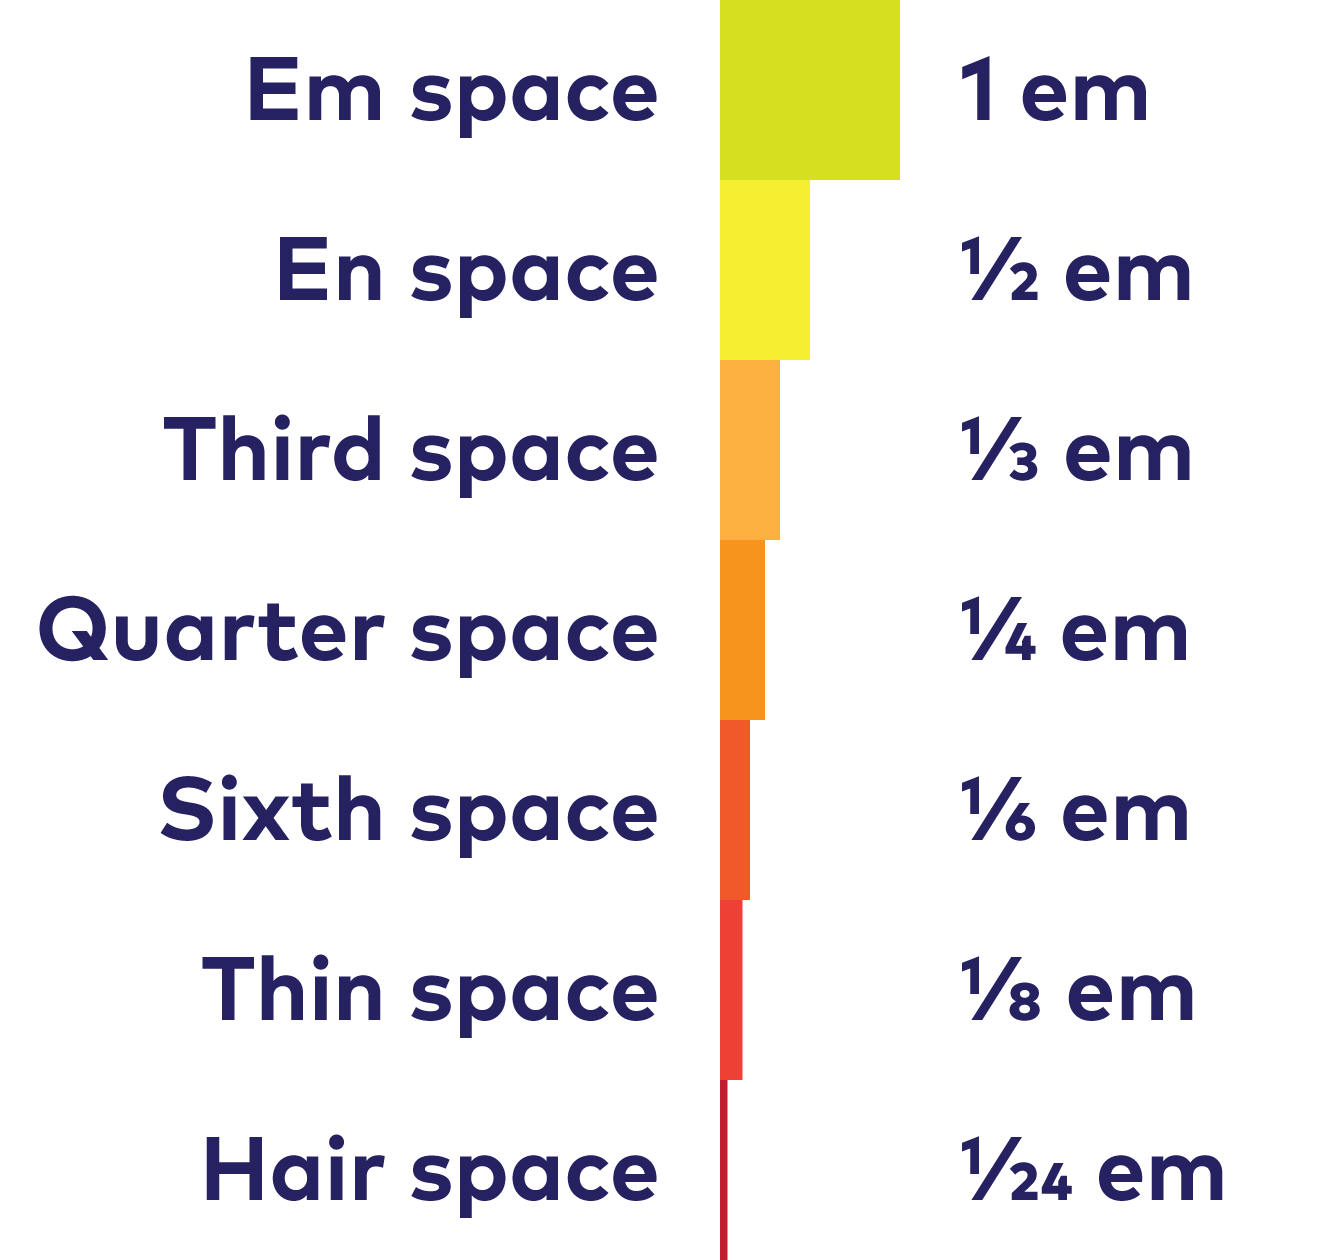 The width of most of the white space characters in relation to the width of the em space.